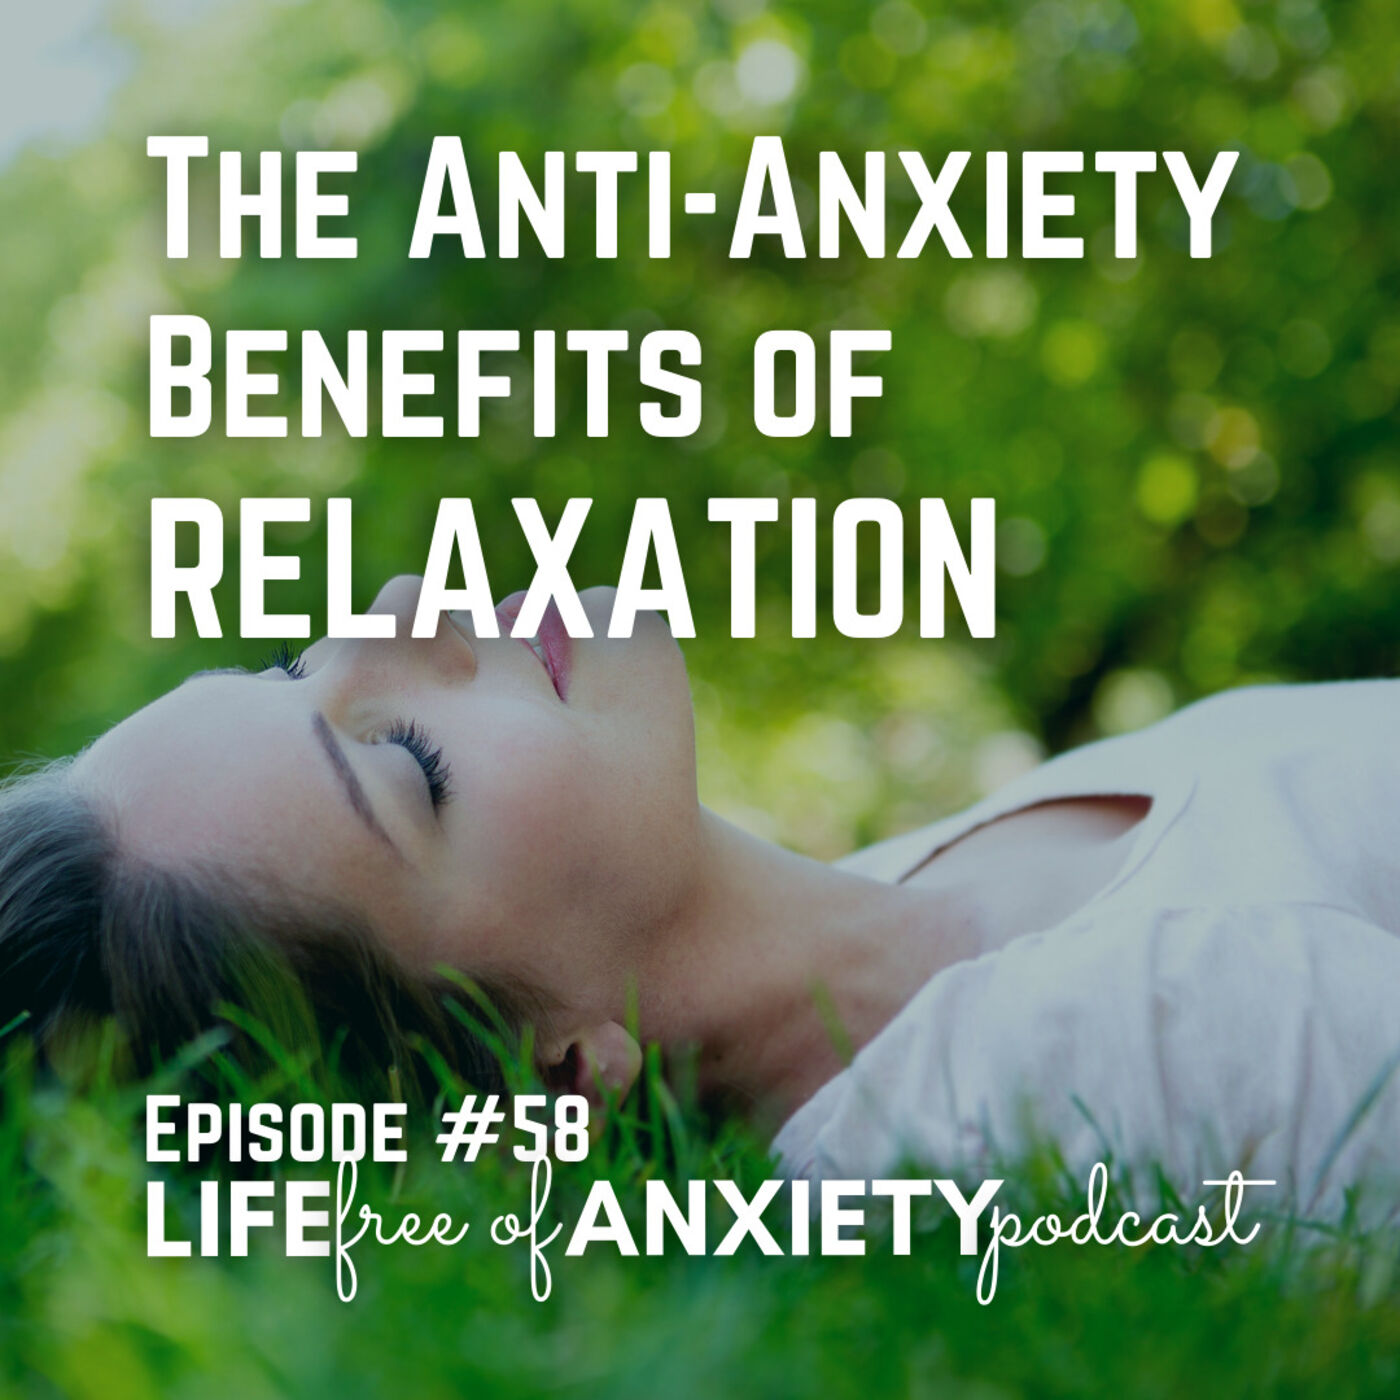 E058 - The Anti-Anxiety Benefits of RELAXATION